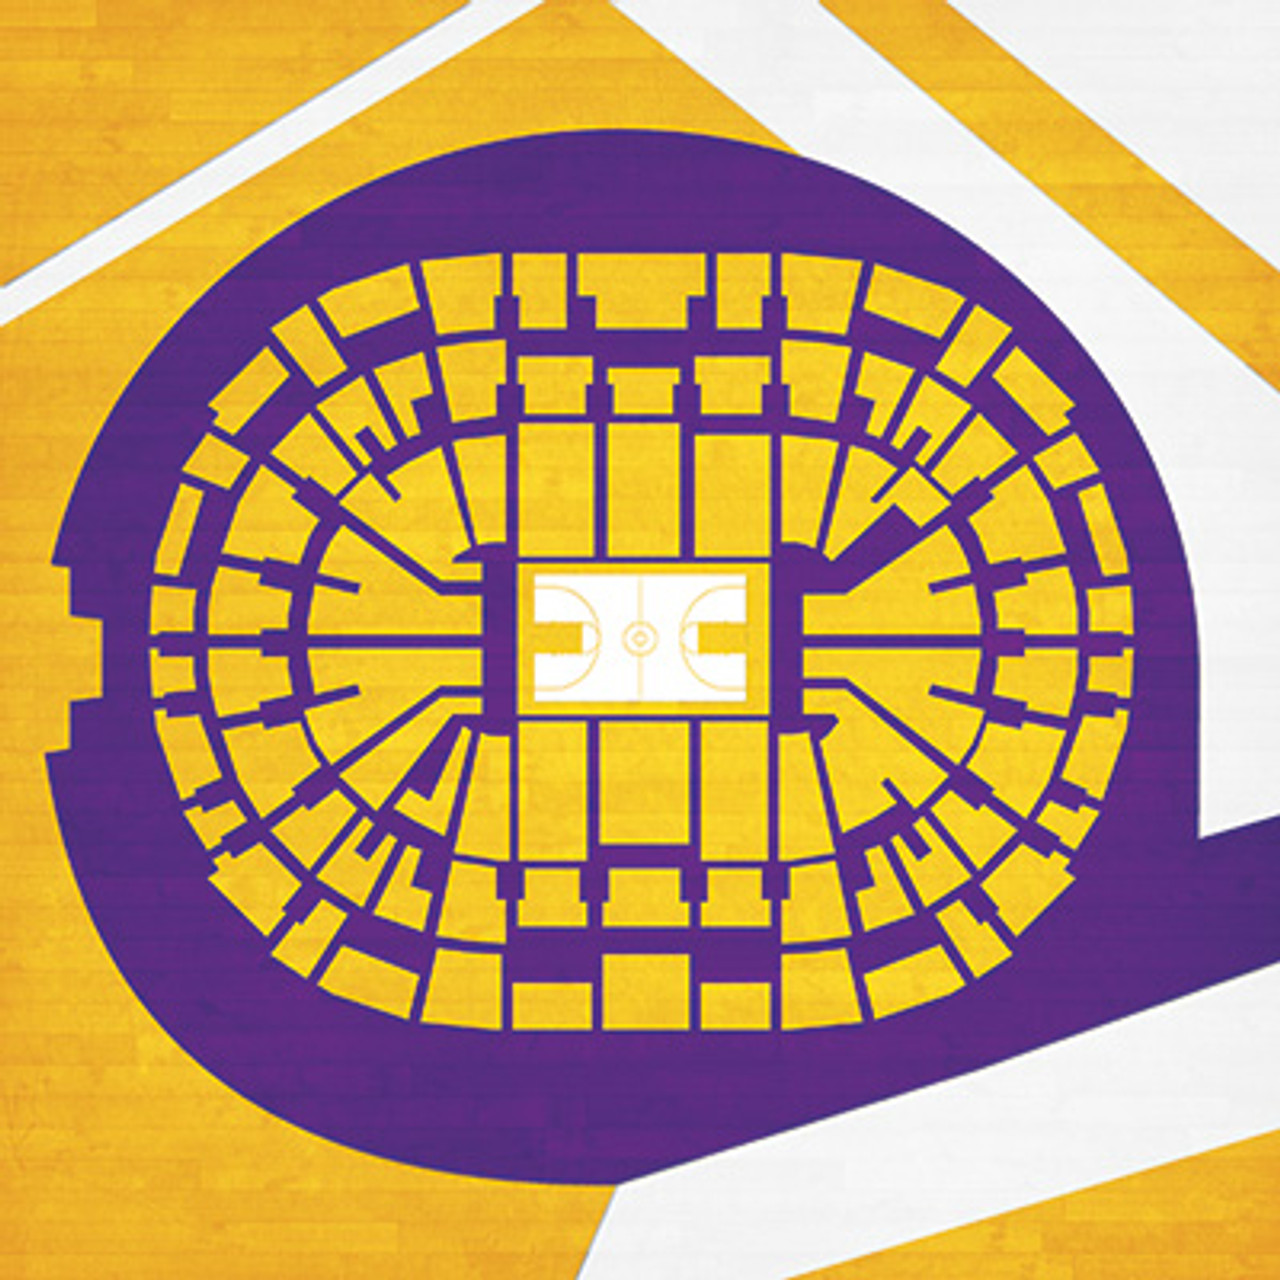 Los Angeles Lakers - Staples Center City Print